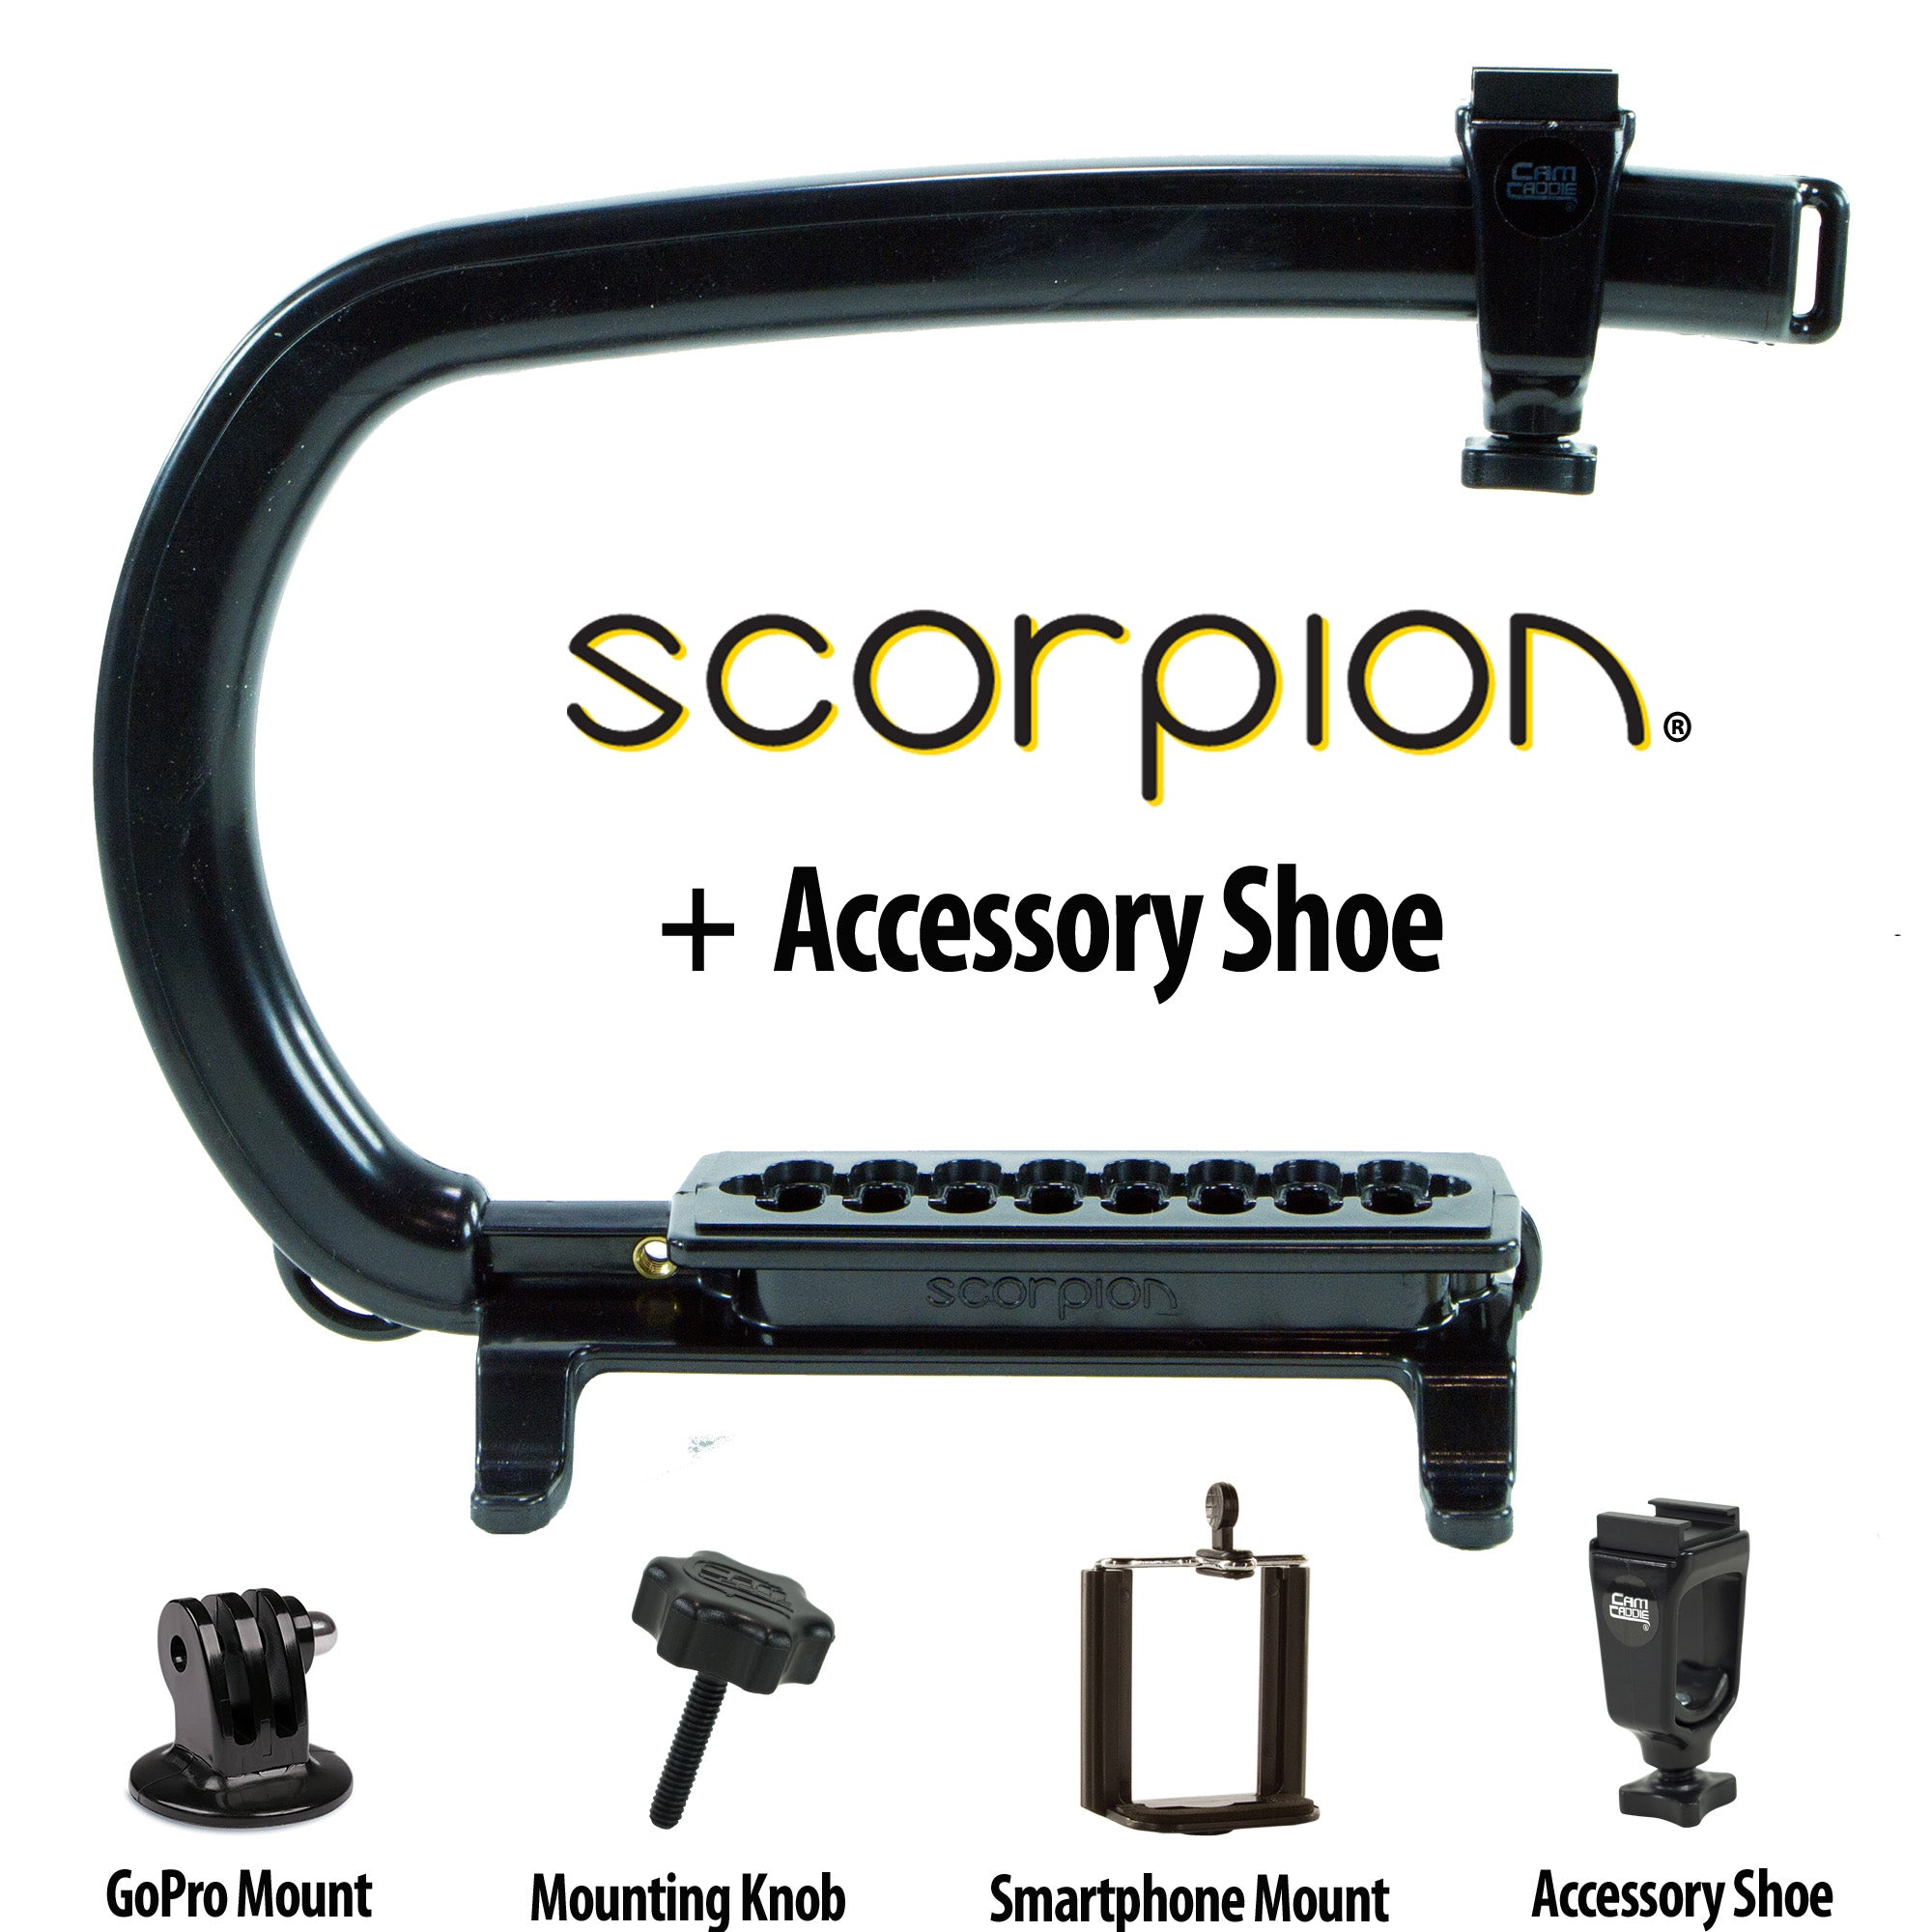 Cam Caddie Scorpion Original Camera Stabilizer Handle with Accessory Shoe - Cam Caddie - The Original Universal Stabilizing Camera Handle